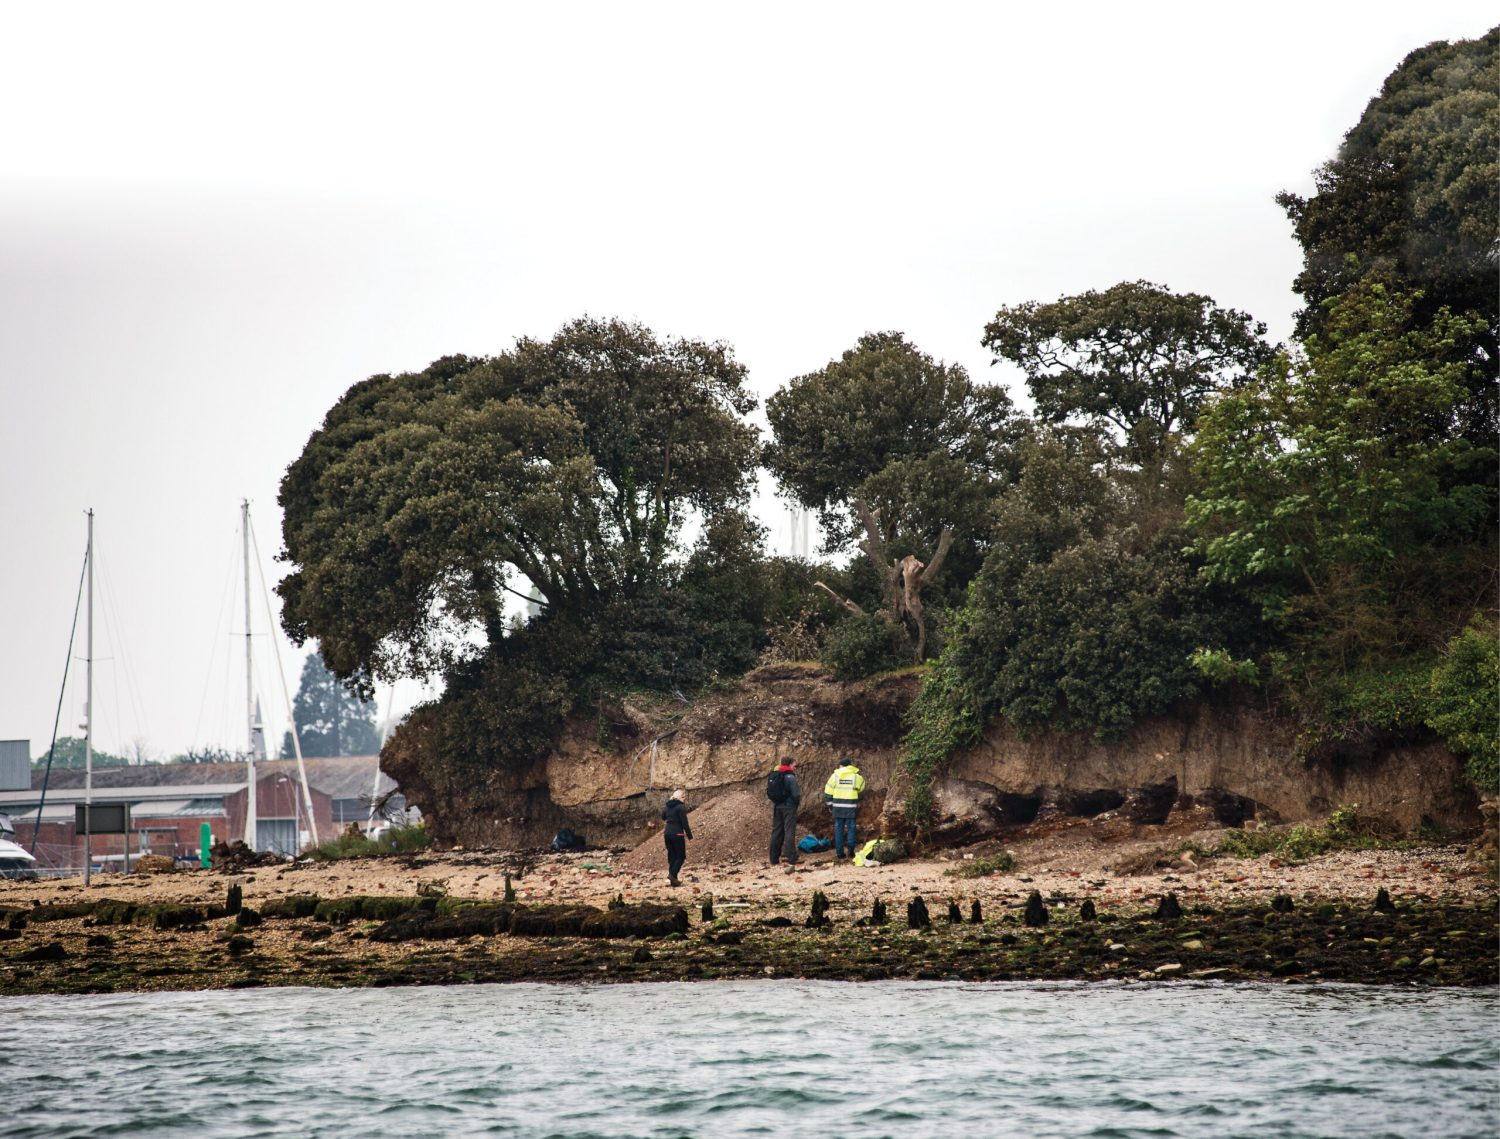 below Known locally as 'Rat Island', this small tidal island in the waters off Portsmouth has long been rumoured to contain the graves of 18th- and 19th-century convicts or prisoners of war.